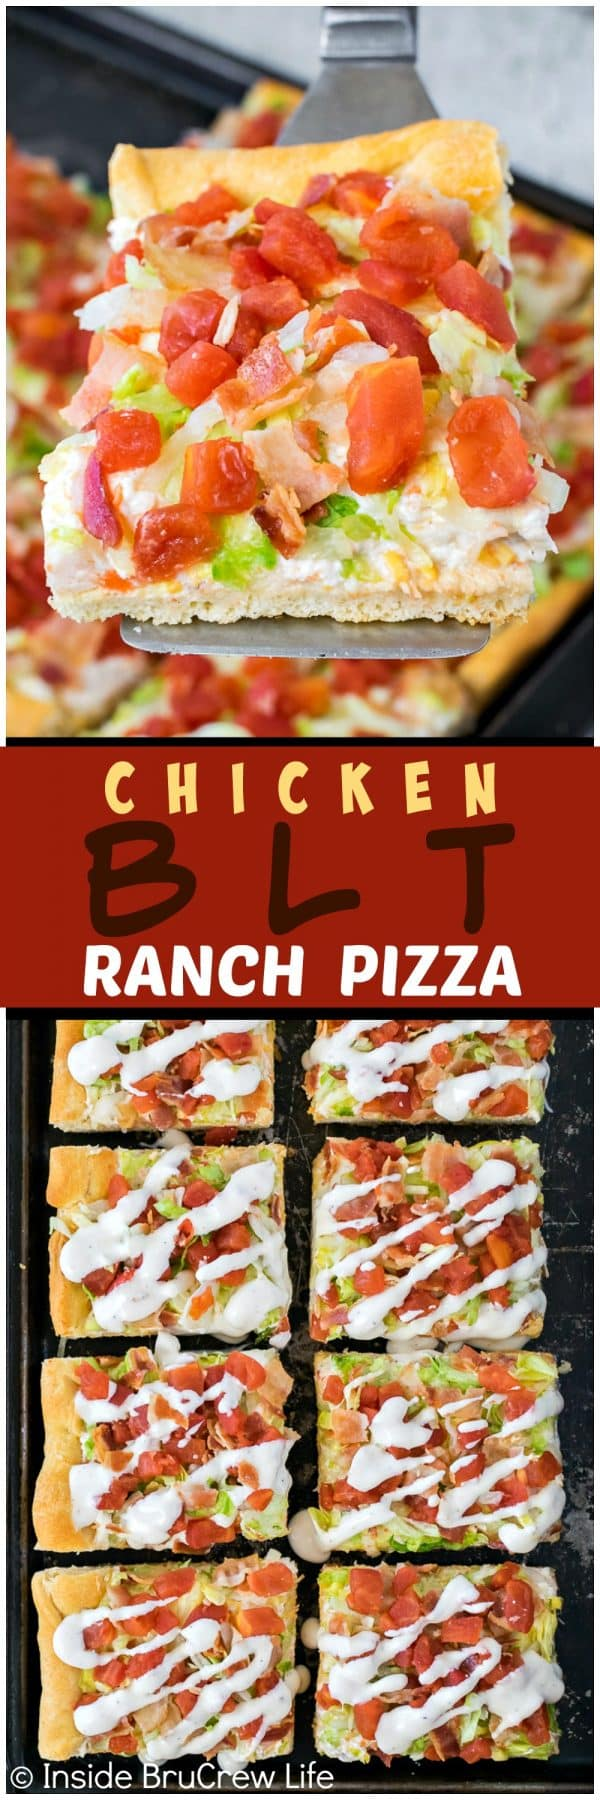 Chicken BLT Ranch Pizza - this easy cold pizza is loaded with lots of tomatoes, bacon, and lettuce. Great recipe for summer picnics or dinners!